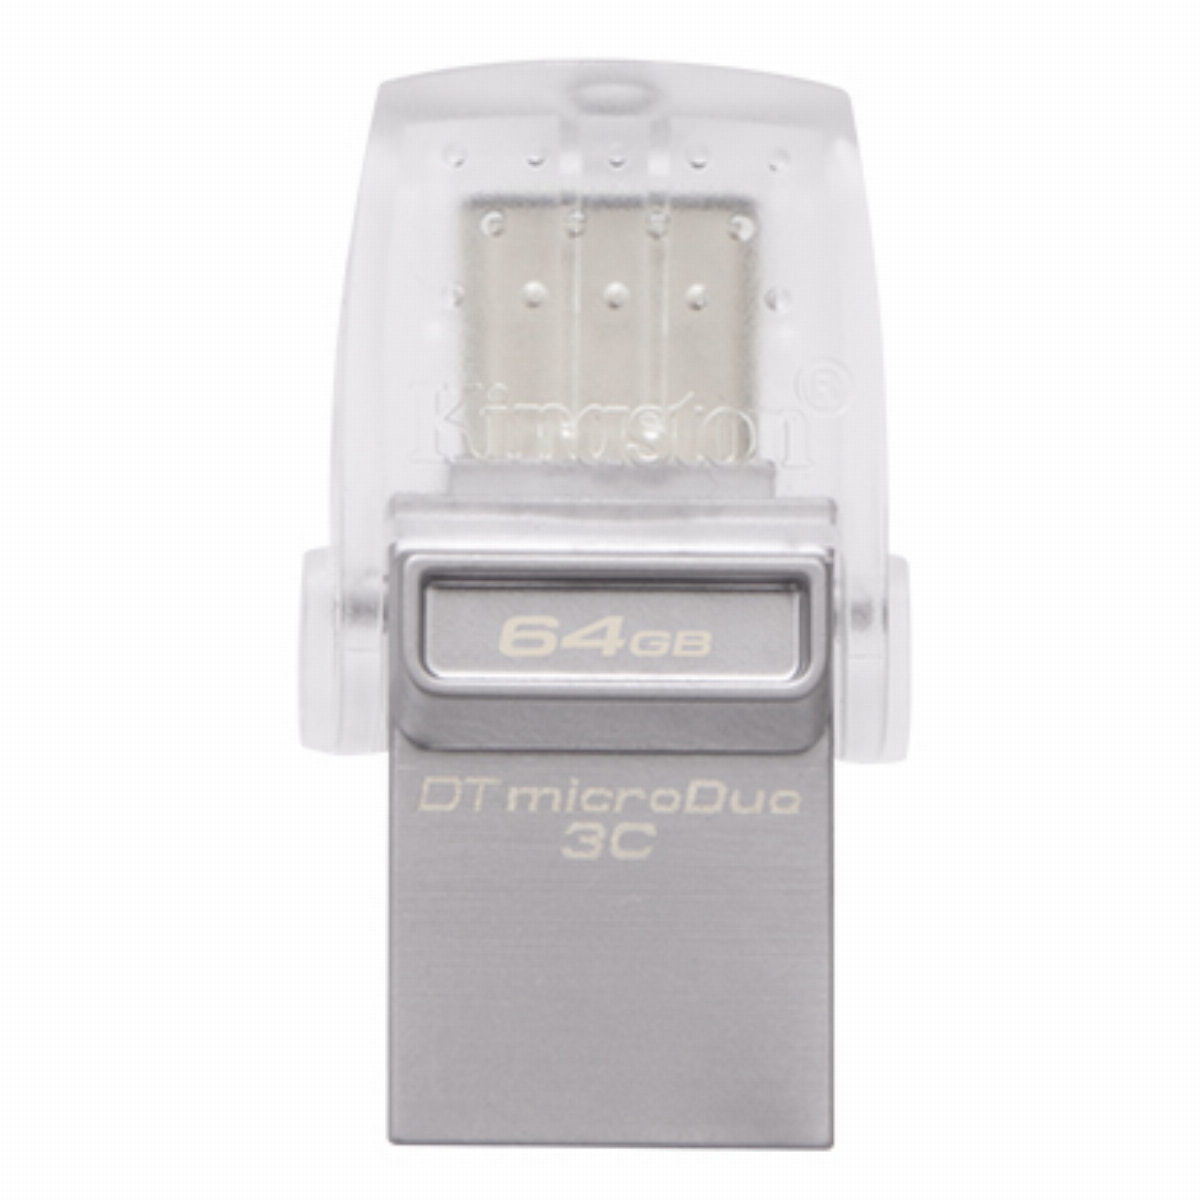 64GB USB DTDUO3C KINGSTON